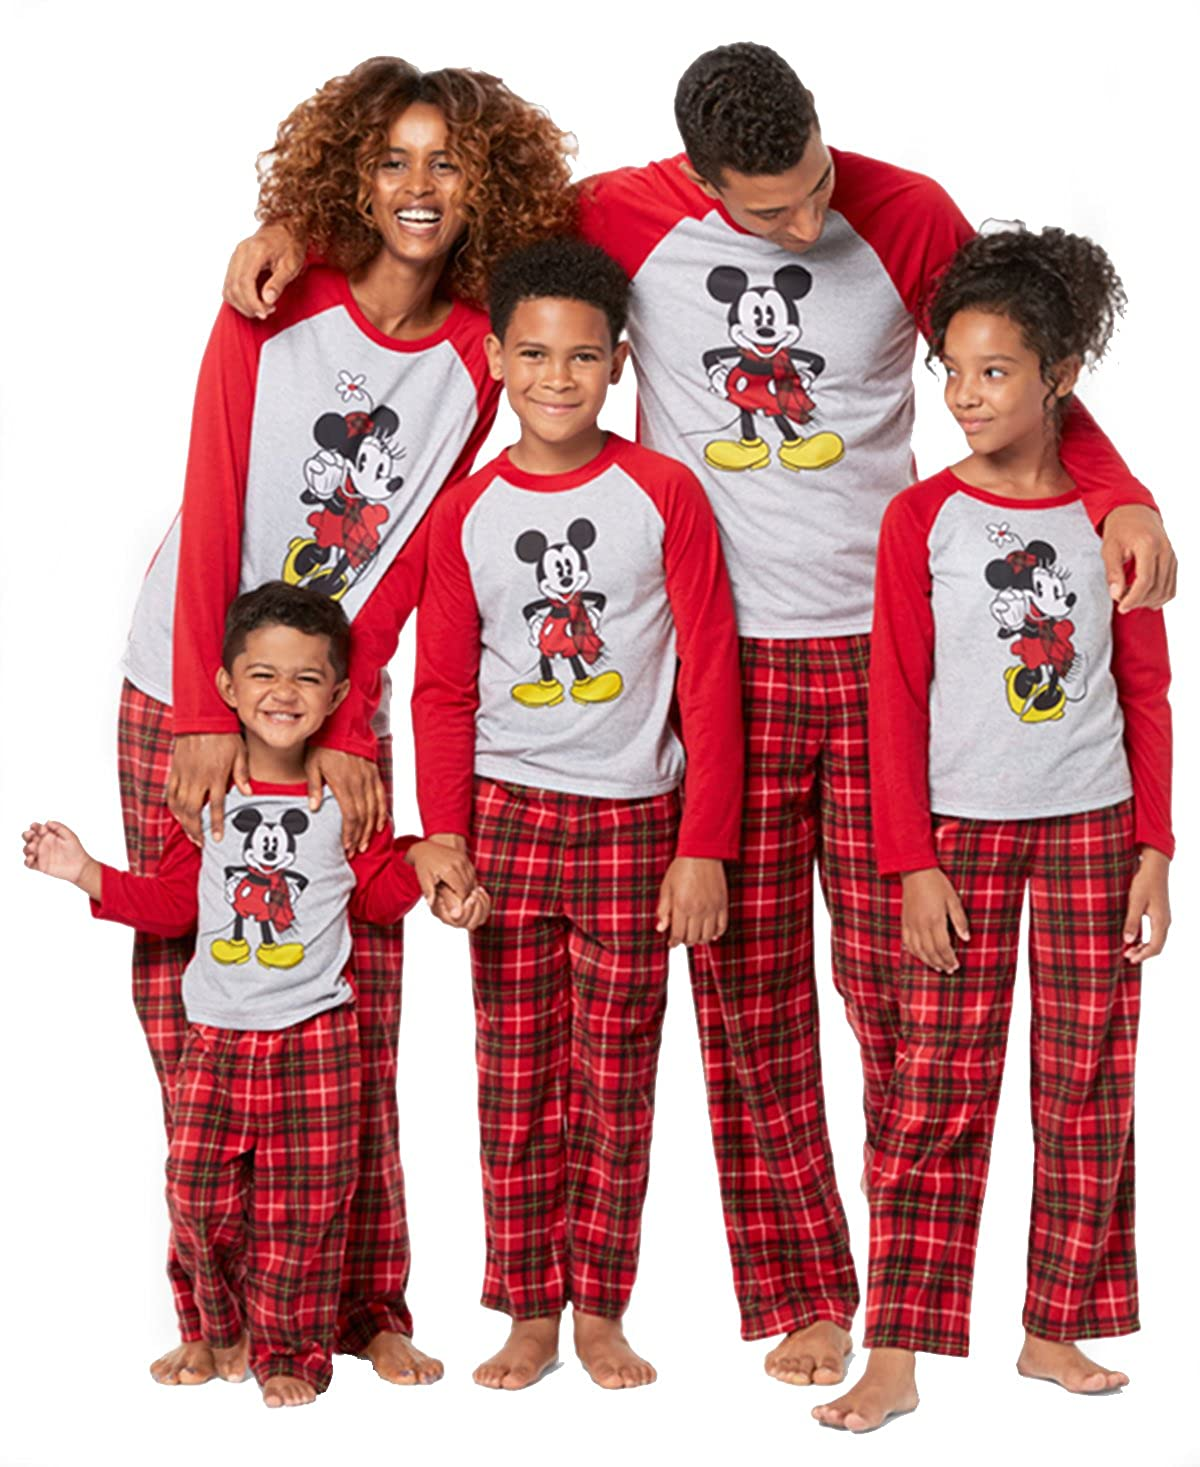 ff3b7939ea41 Mickey and Minnie Mouse Christmas Holiday Family Sleepwear Pajamas ...